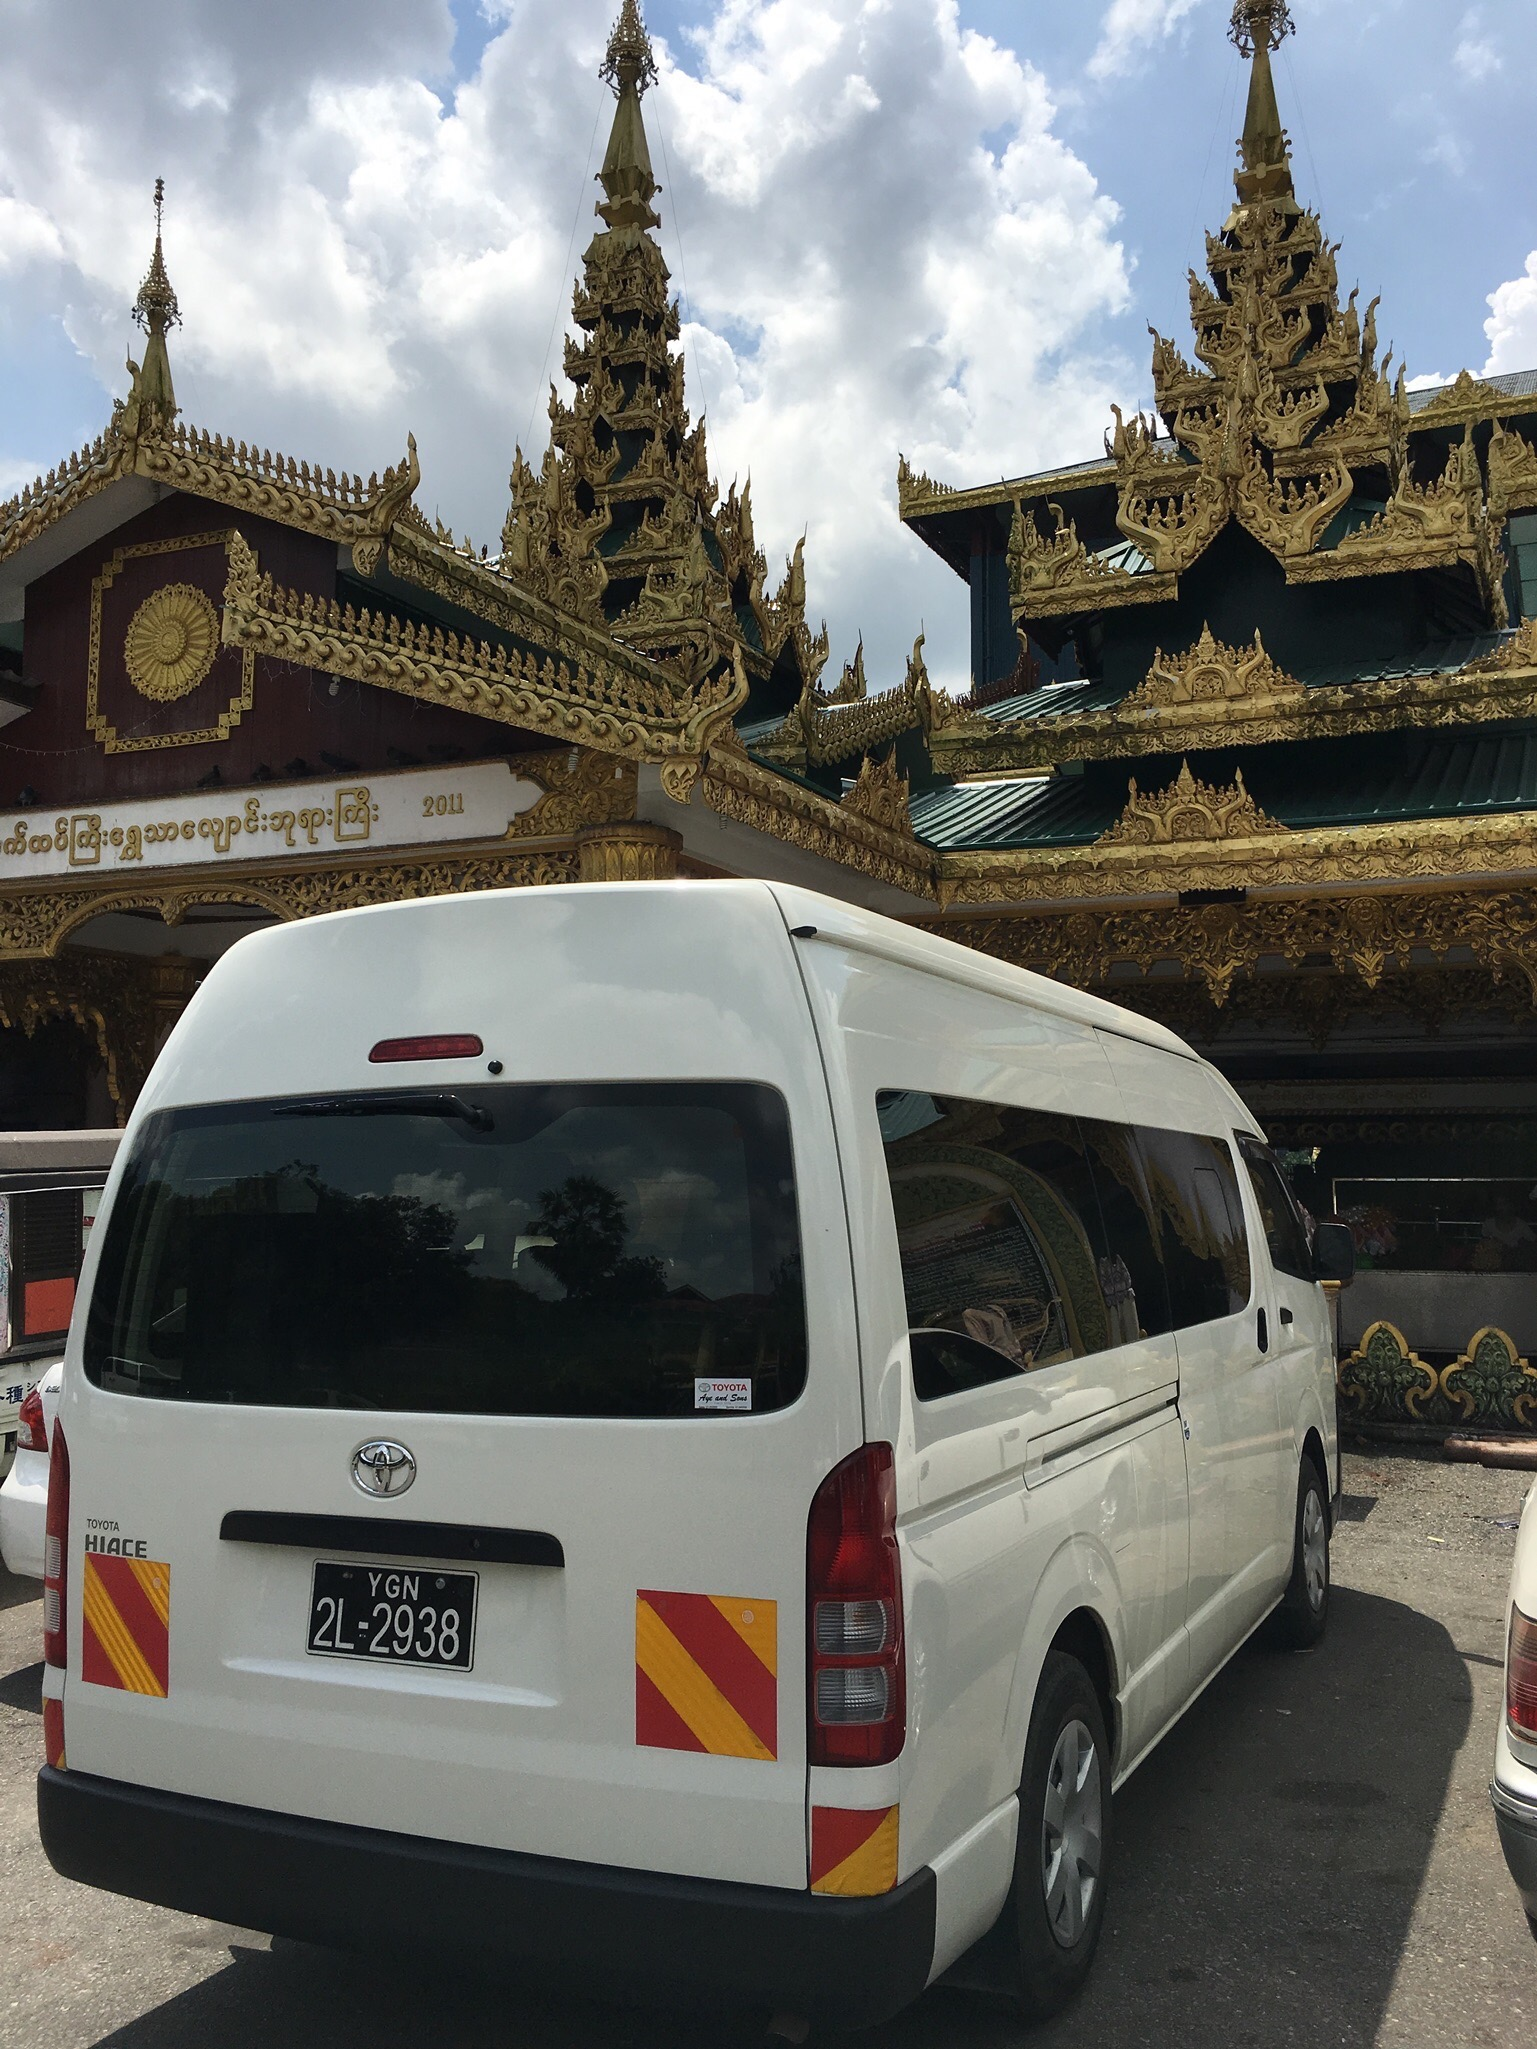 14 Seater van in Myanmar